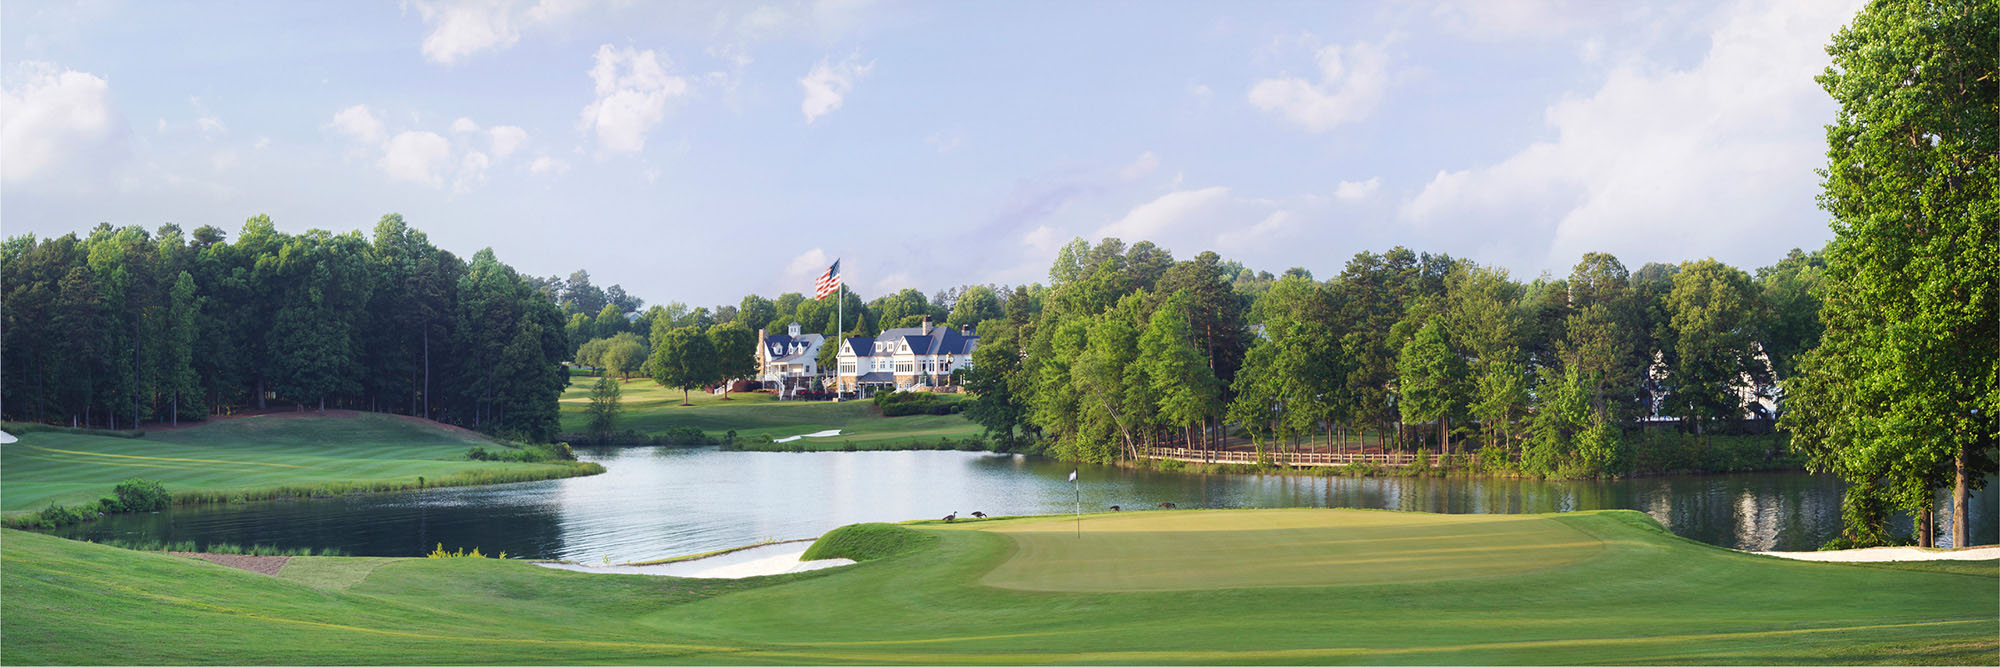 Golf Course Image - Trump National Charlotte No. 17